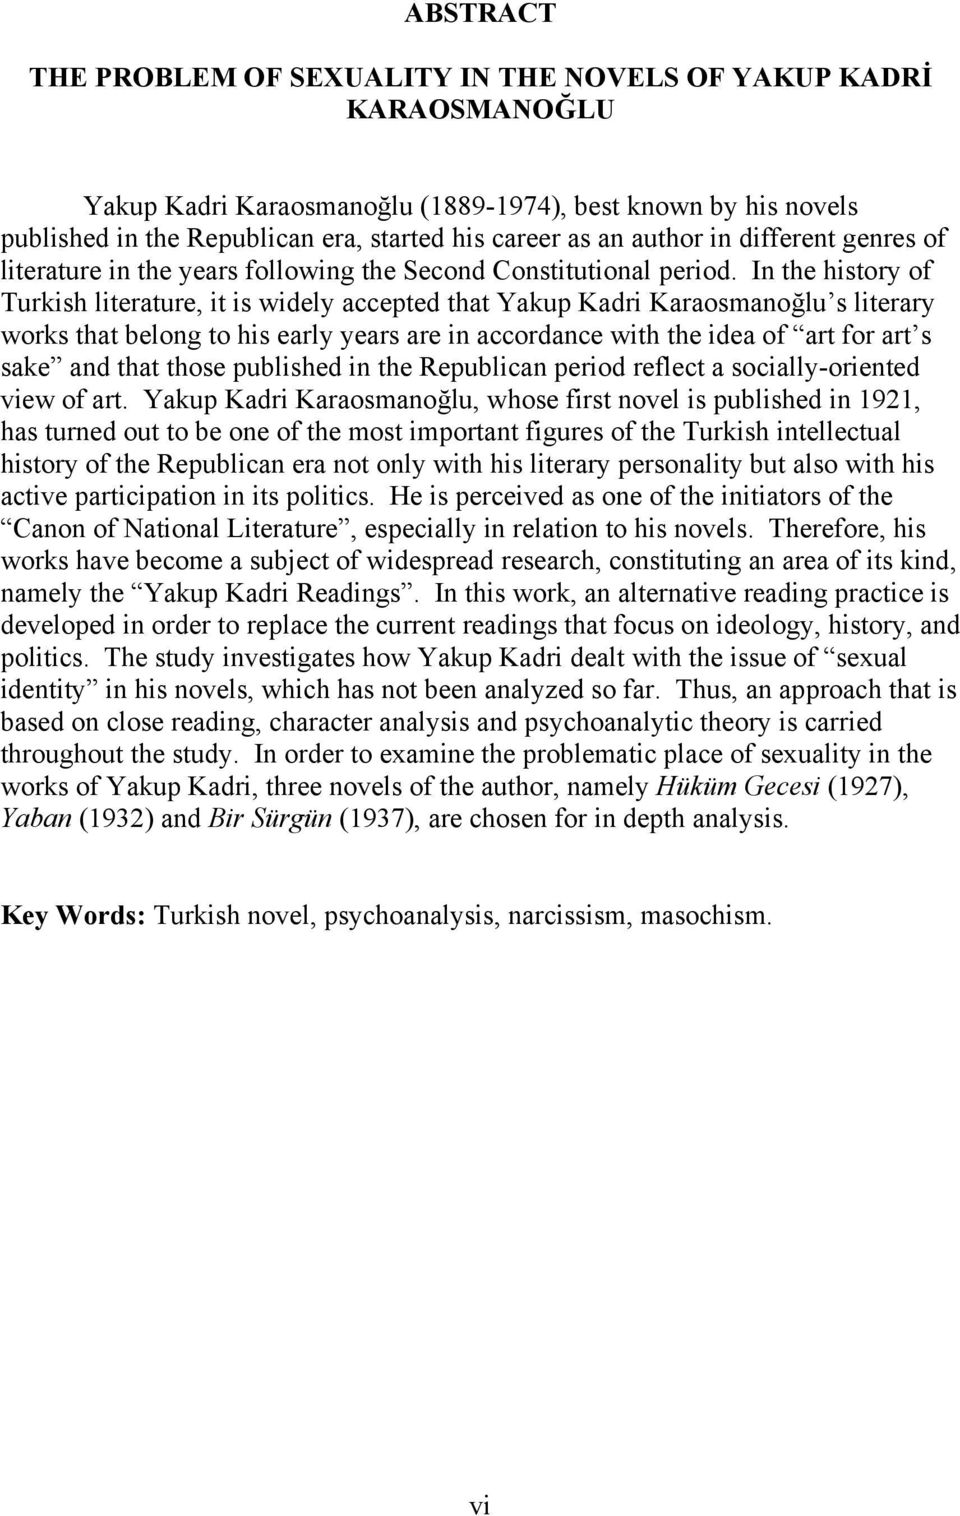 In the history of Turkish literature, it is widely accepted that Yakup Kadri Karaosmanoğlu s literary works that belong to his early years are in accordance with the idea of art for art s sake and